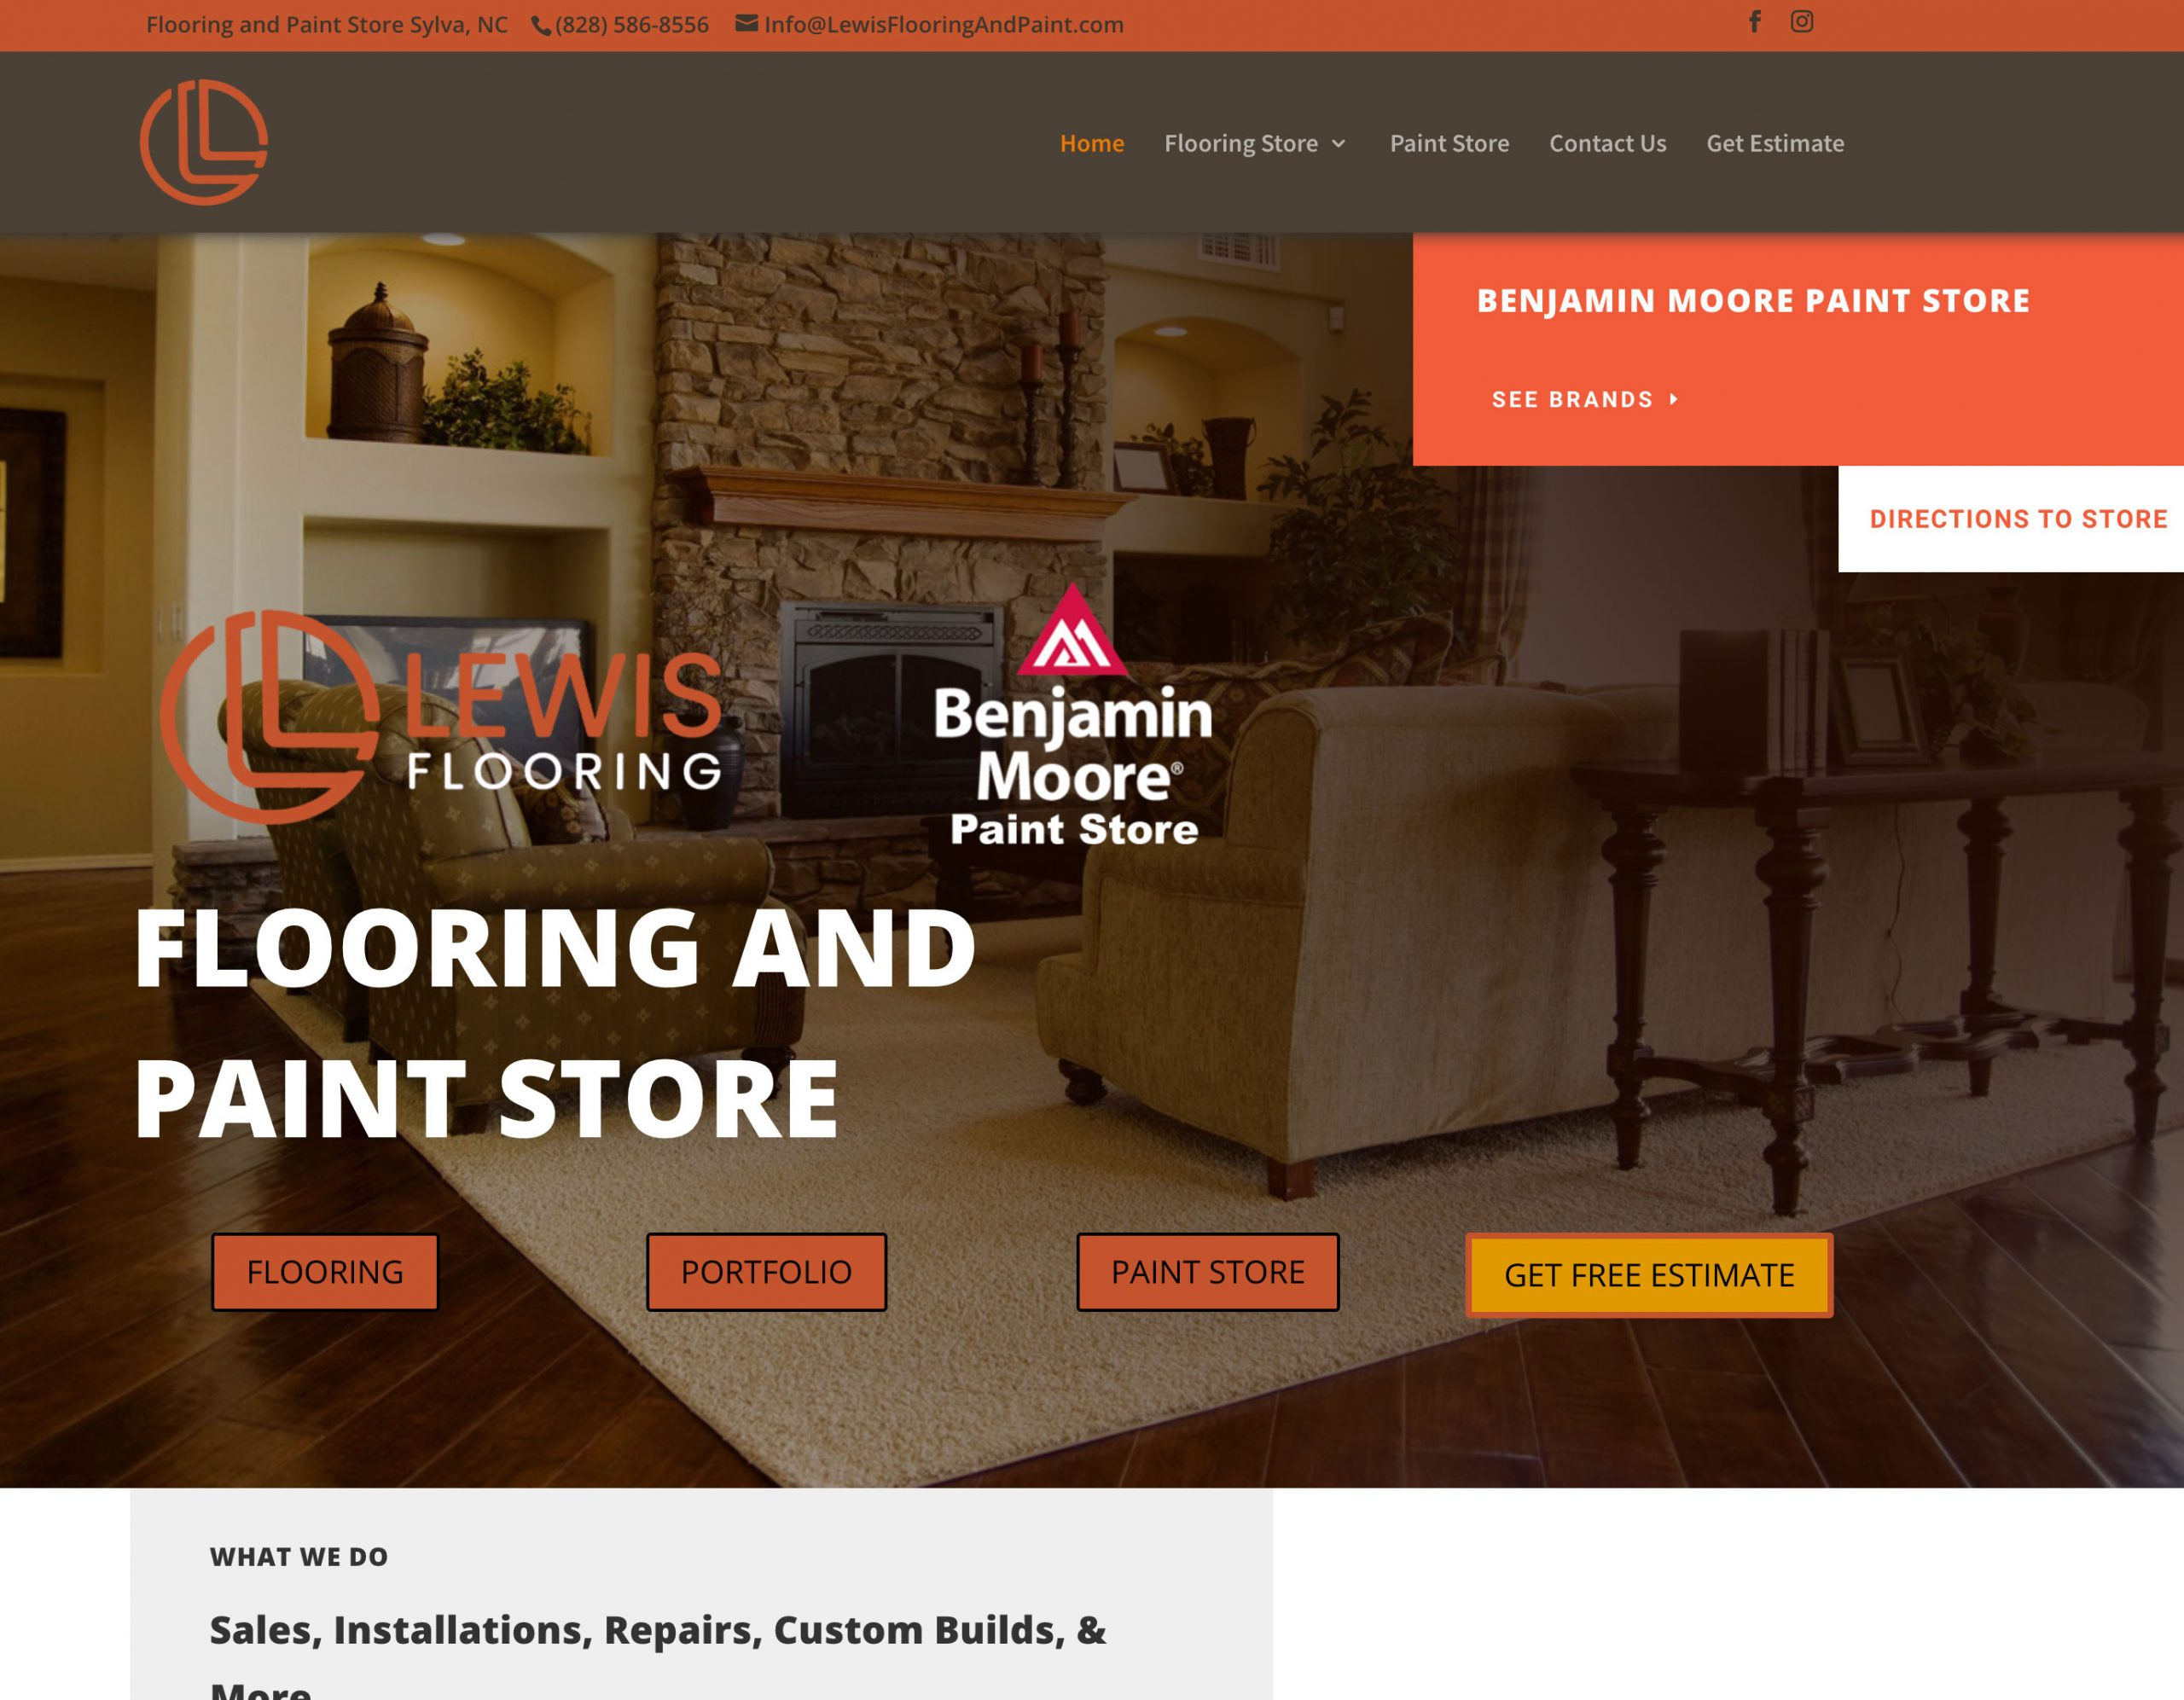 lewis flooring and paint